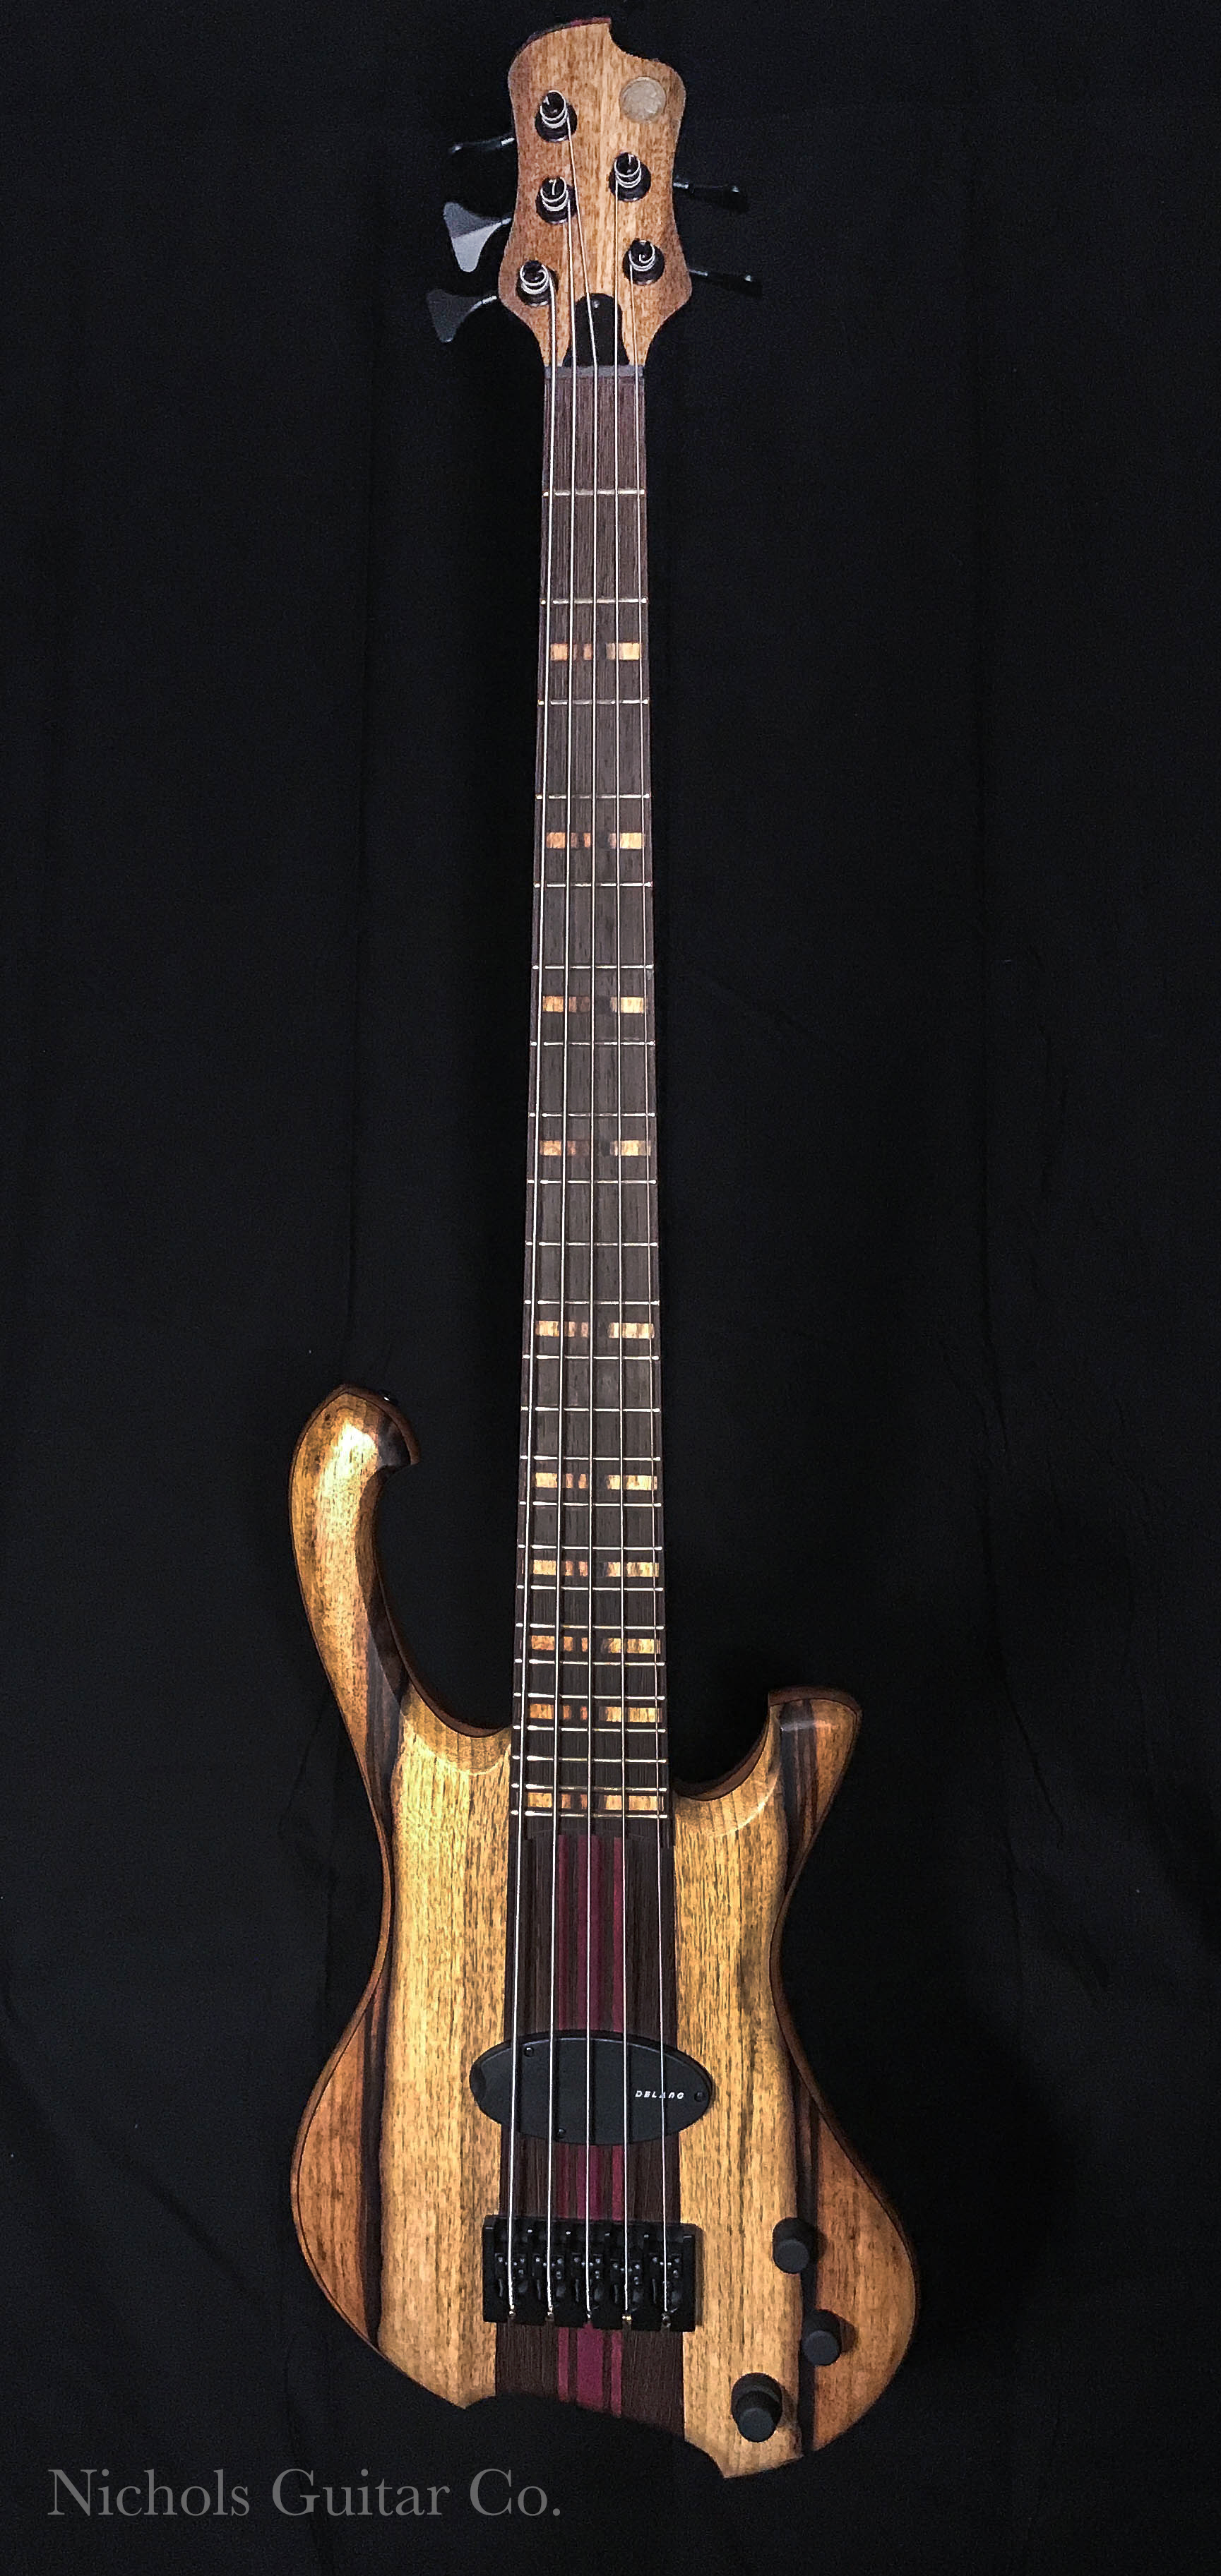 NGCo Gene full frontal